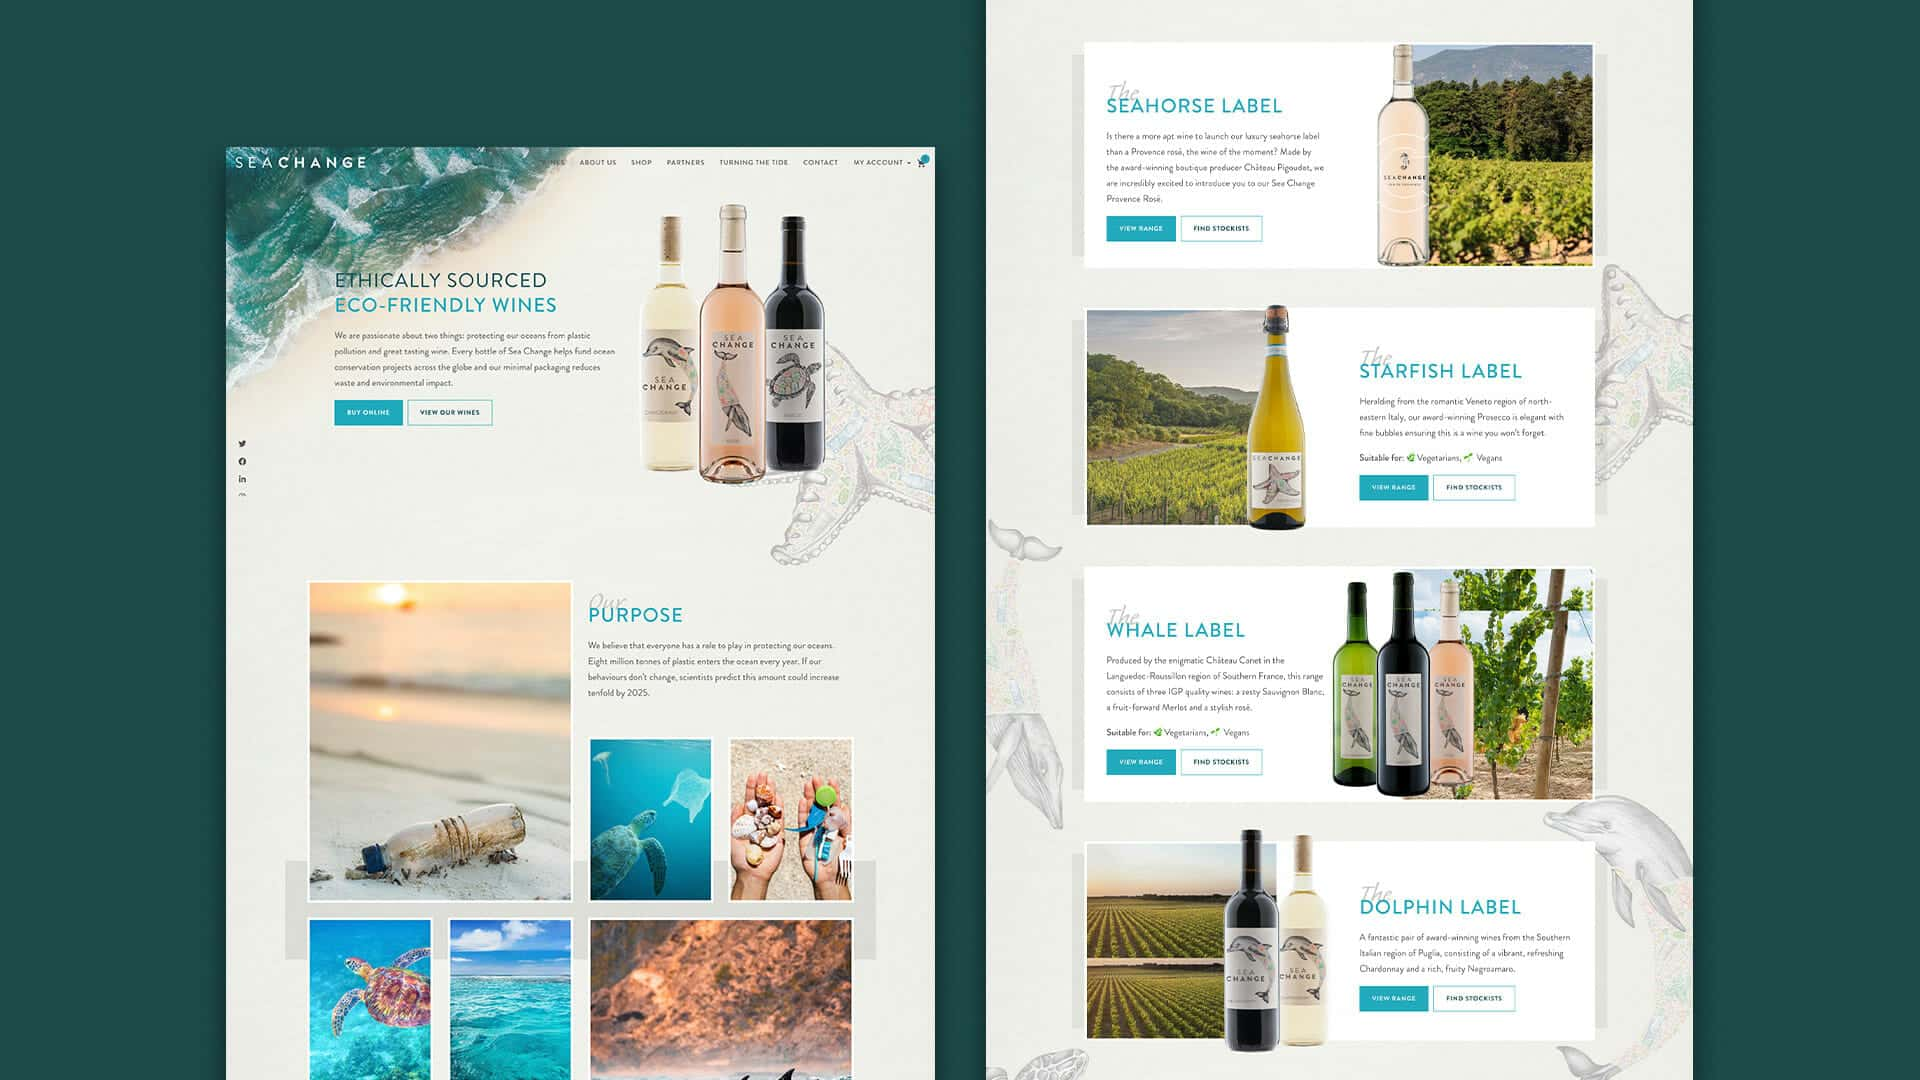 Seachange website redesign with sustability in mind